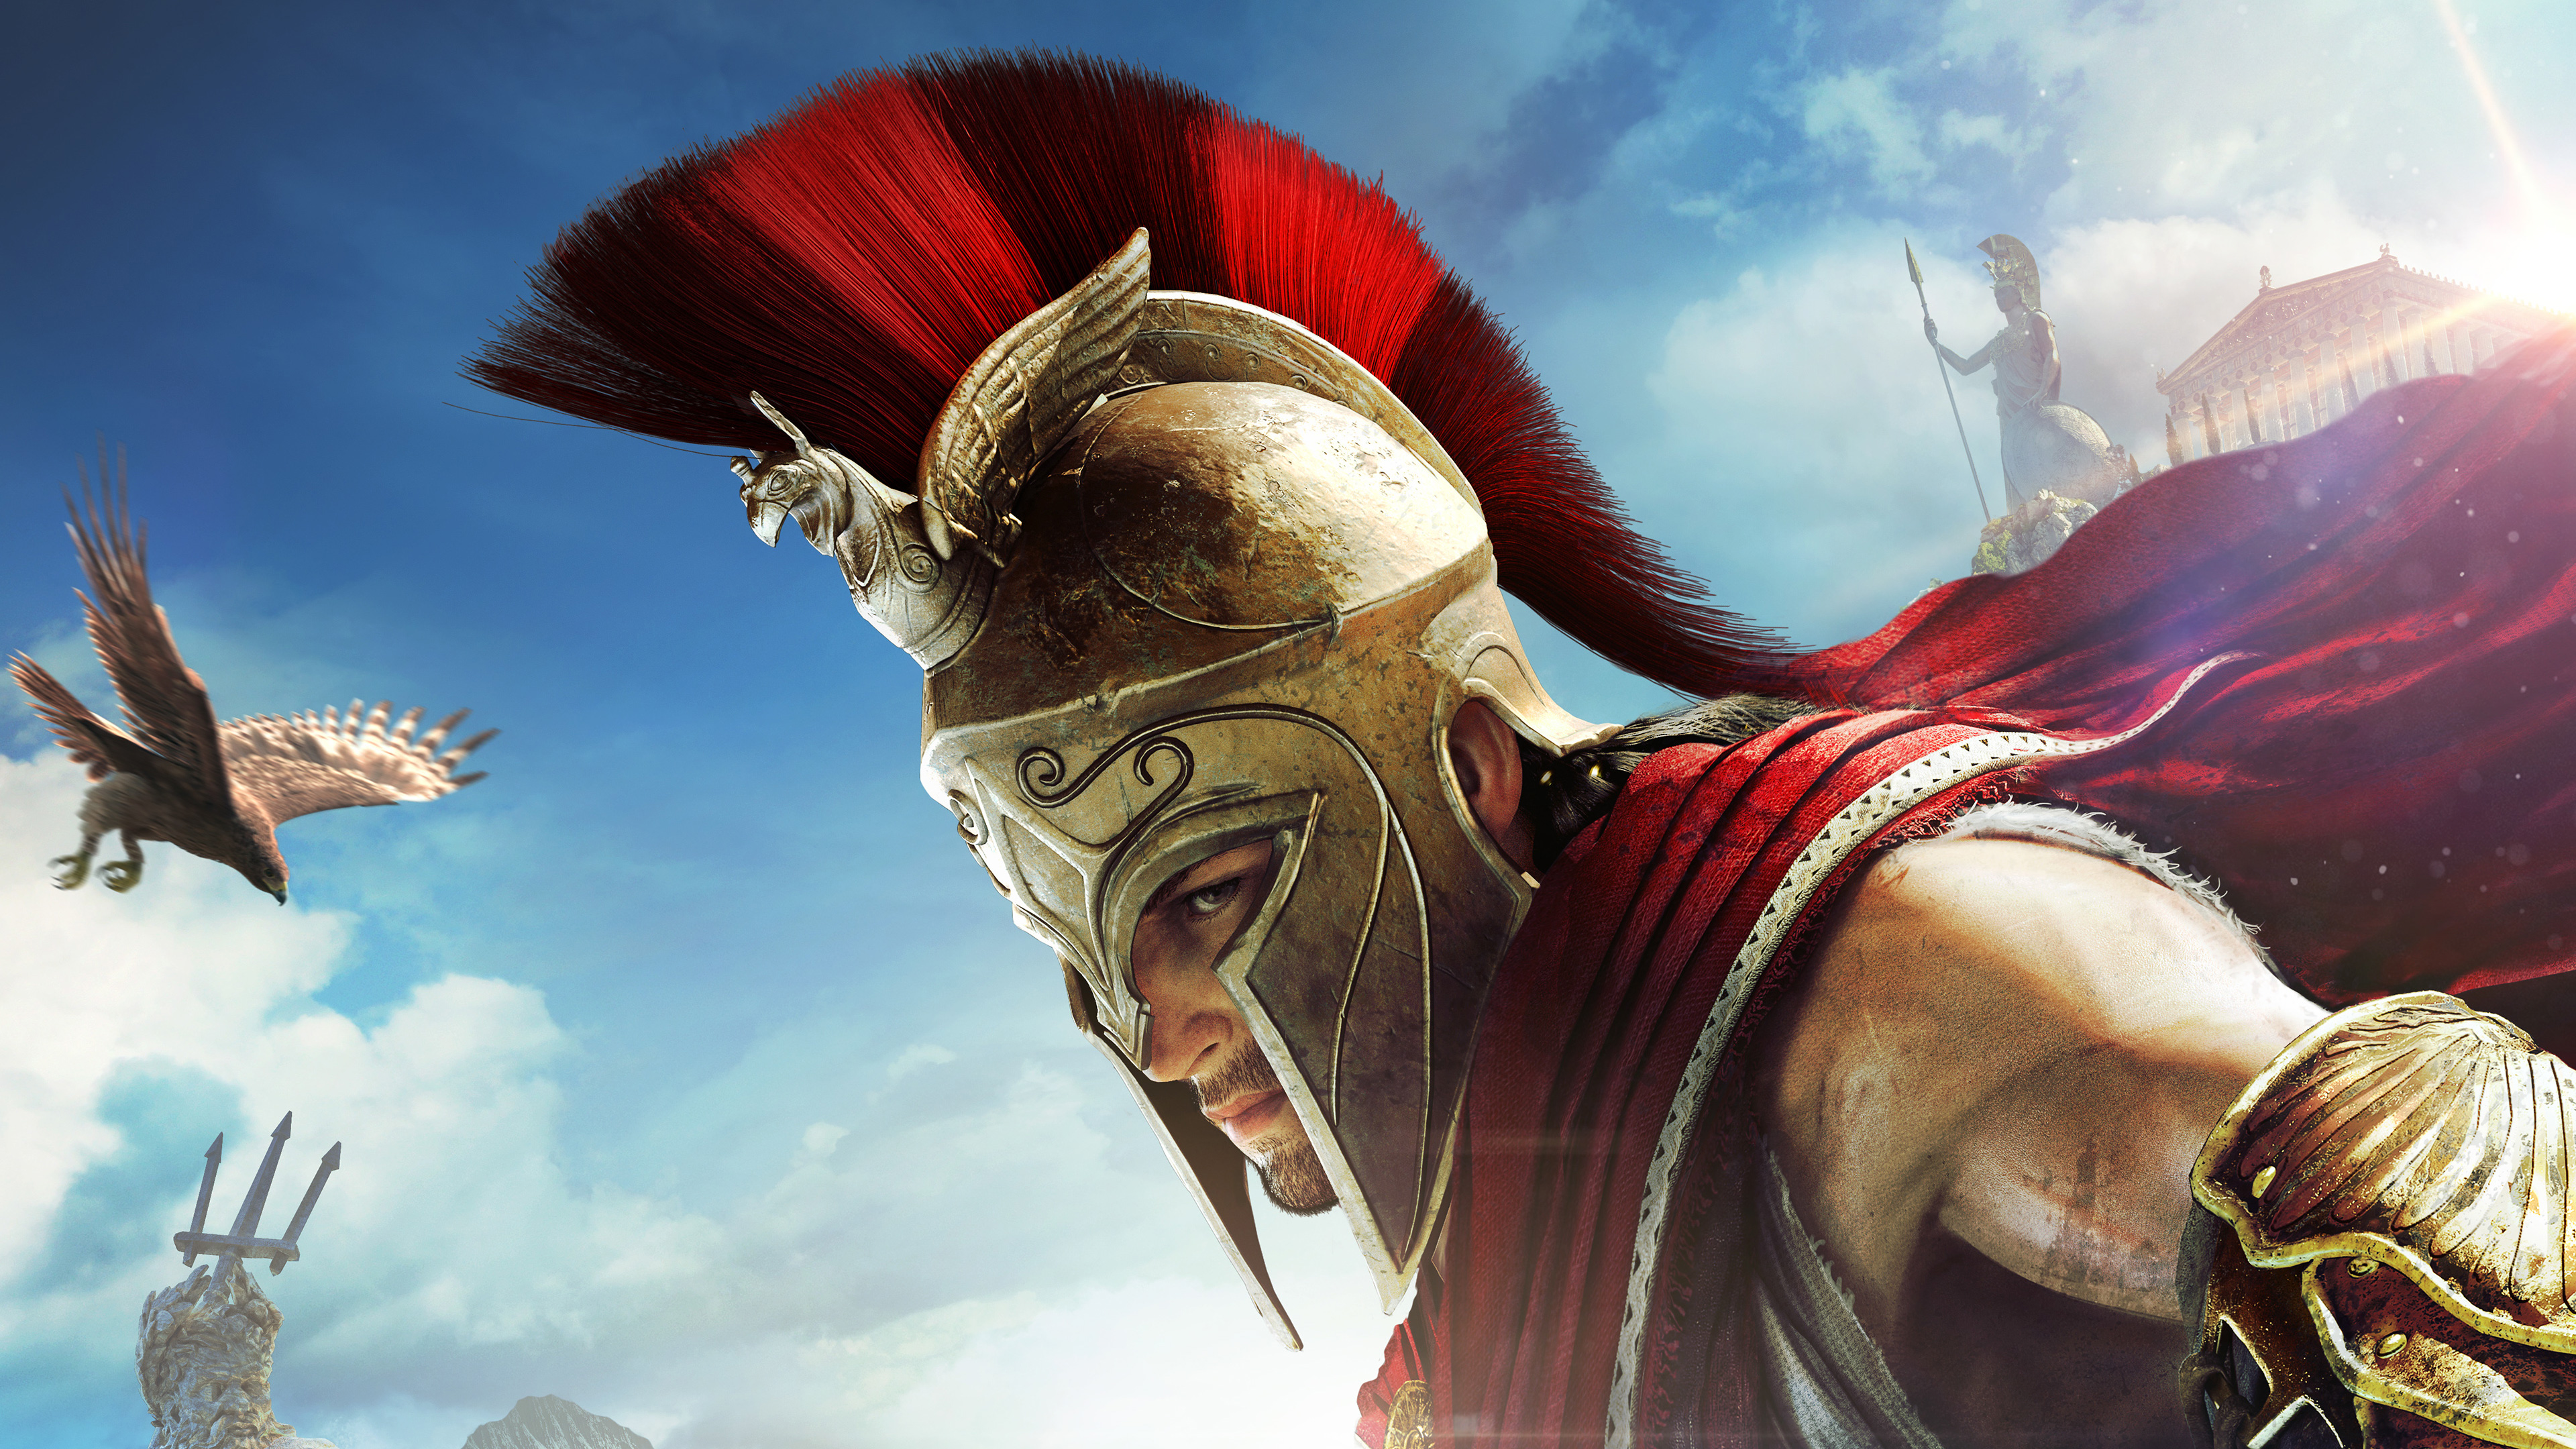 4k Assassins Creed Odyssey Hd Games 4k Wallpapers Images